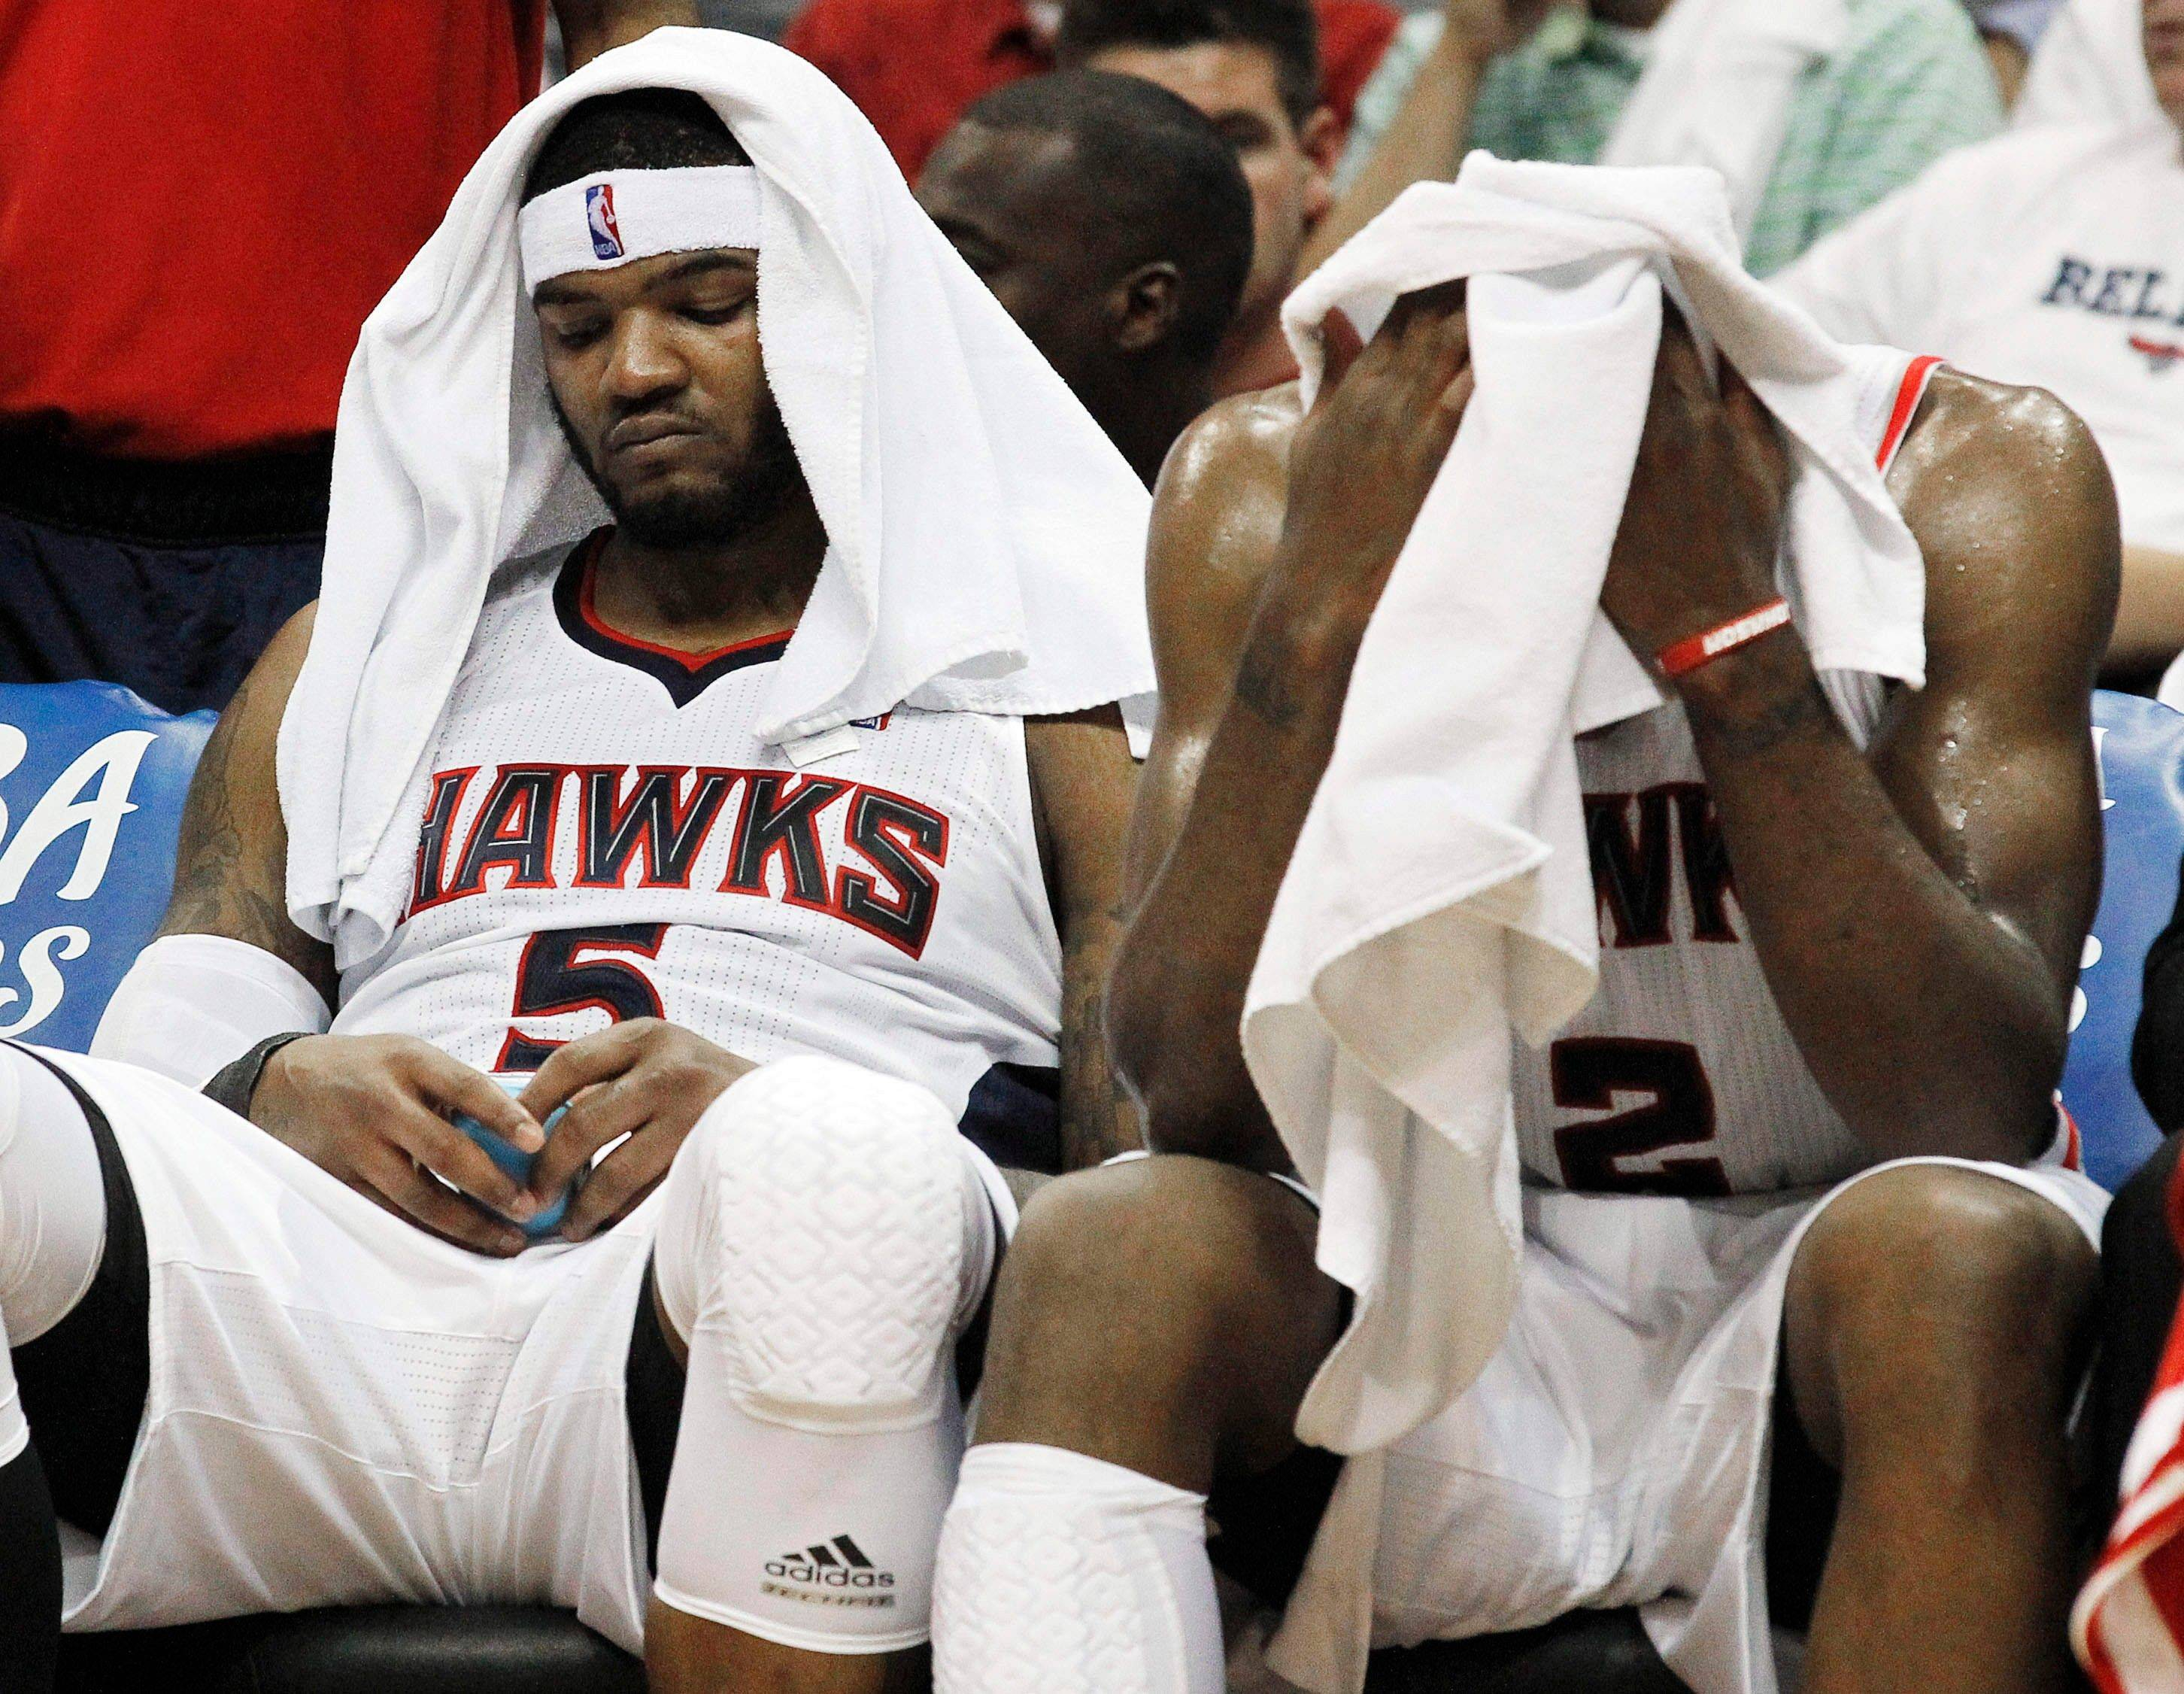 Atlanta Hawks forward Josh Smith and teammate Joe Johnson, right, react in the closing seconds of the fourth quarter of Game 6 Thursday. Chicago won 93-73 to advance to the Eastern Conference Finals against the Miami Heat.